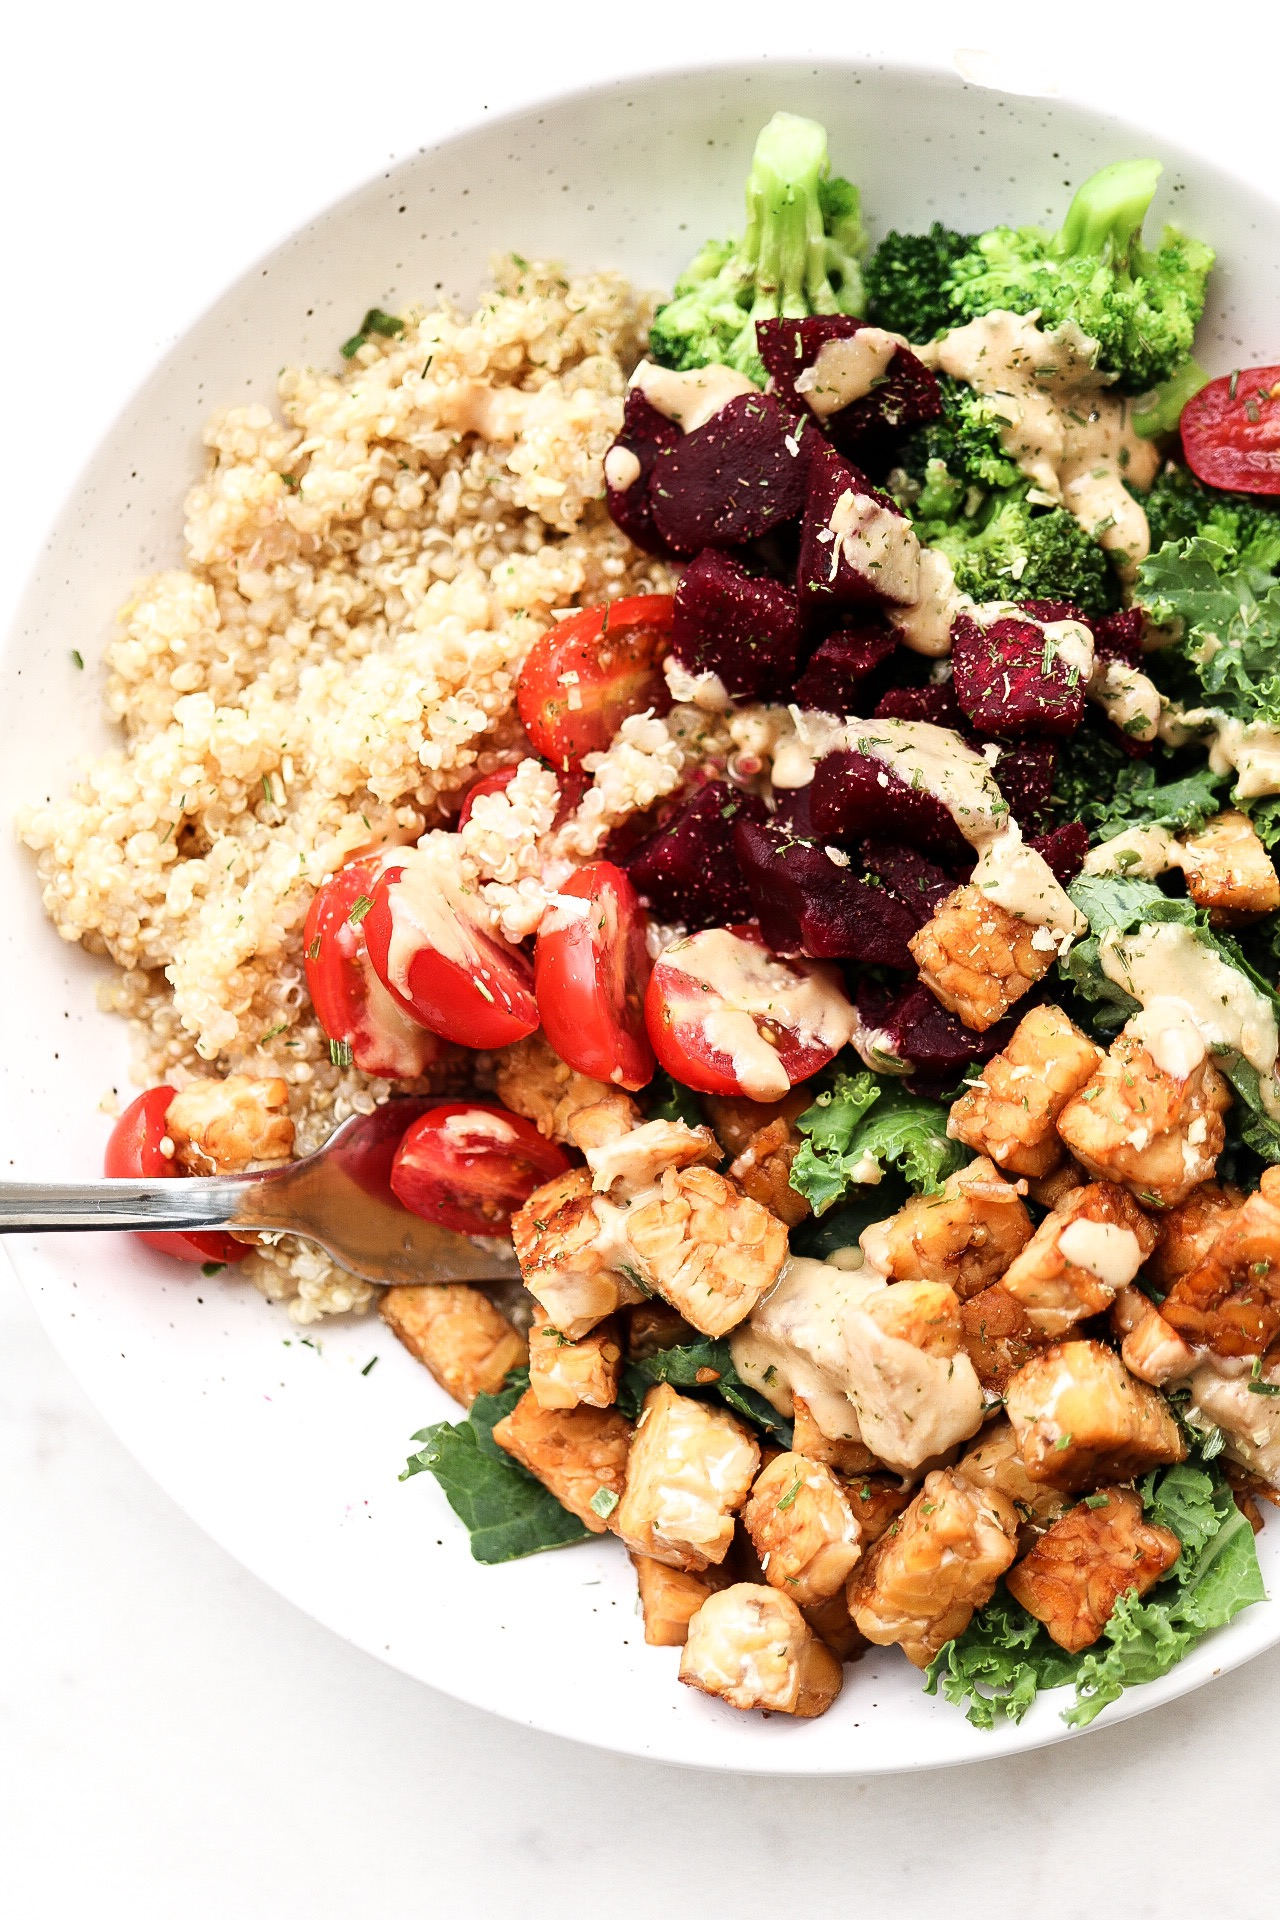 Quinoa & Beet Tempeh Bowl - INGREDIENTS:BOWL1/3 cup cooked quinoa1/4 cup cooked beets1/4 cup boiled broccoliSliced cherry tomatoesHandful of kaleTahini & dijon mustard for dressingSalt & seasonings of choiceSWEET TEMPEH1 package of tempeh - diced1/2 tsp salt1/2 cup water3 Tbsp coconut aminosINSTRUCTIONS:Meal-prep a big batch of quinoa for days ahead - or just make enough for one meal! It's up to you. Cook your beets and broccoli (I usually use frozen), slice up your tomatoes, and wash your kale. Add everything into a bowl and set aside. In a saucepan, add in your chopped tempeh as well as the water, salt, and coconut aminos. Let it simmer for about 5 minutes, until there is no longer any liquid and the tempeh is golden. Add as much tempeh to your bowl as you please - I usually use 1/3 or 1/4 per meal! As for dressing and seasoning, I just add in usually 2 Tbsp of tahini and 1 Tbsp of dijon mustard, along with a generous sprinkle of salt and other spices such as onion powder and garlic powder.